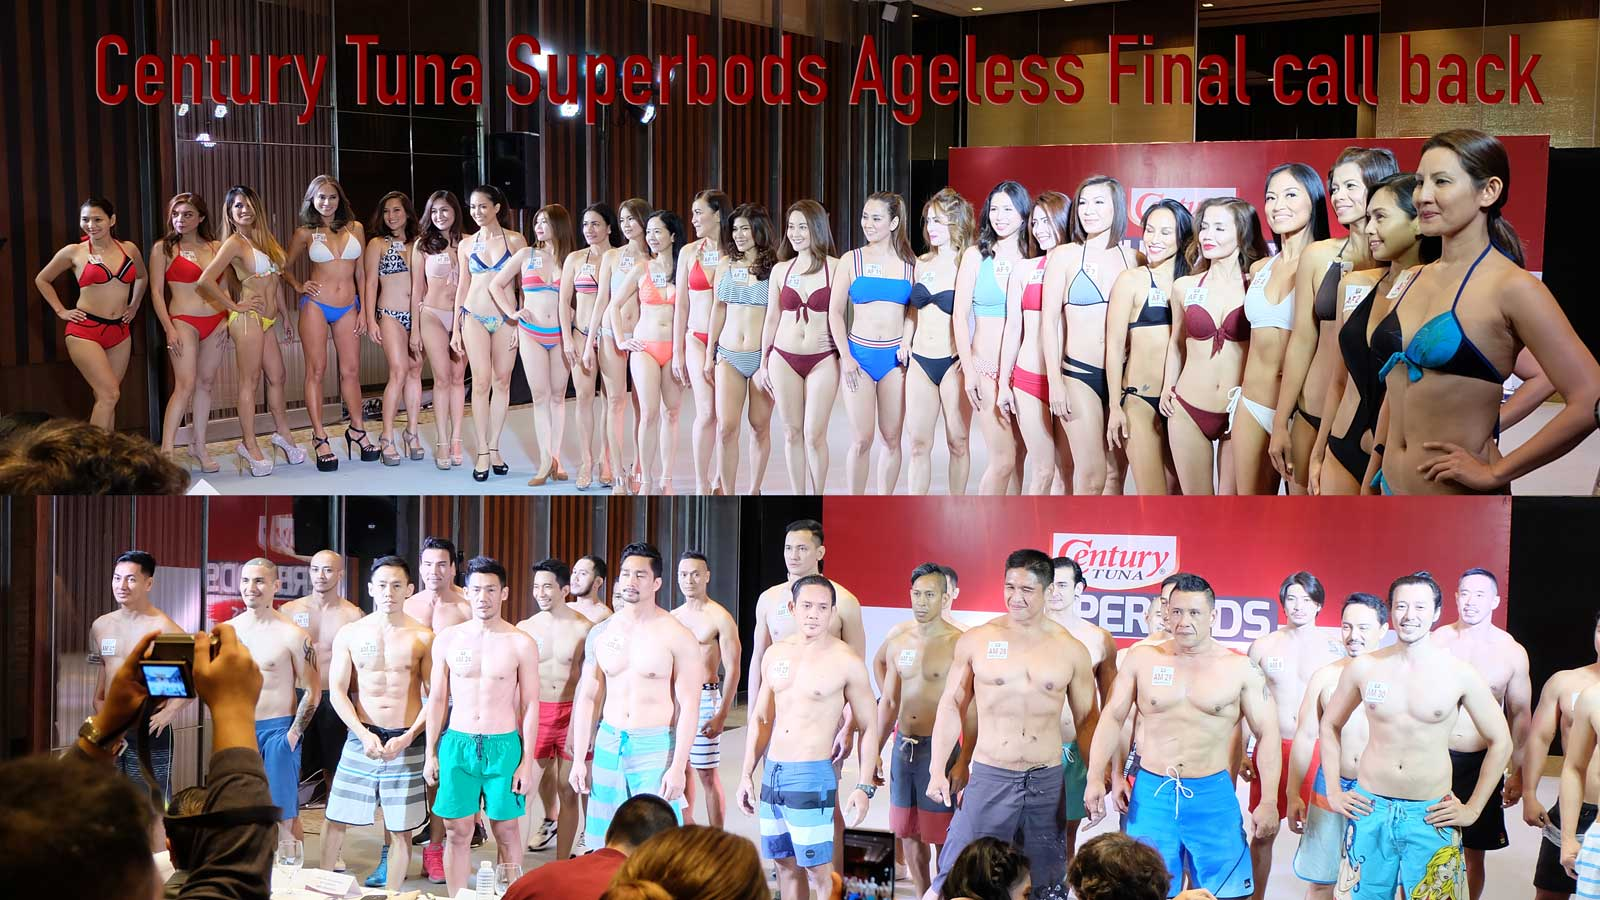 Century Tuna Superbods Ageless 2018 holds final call-back!